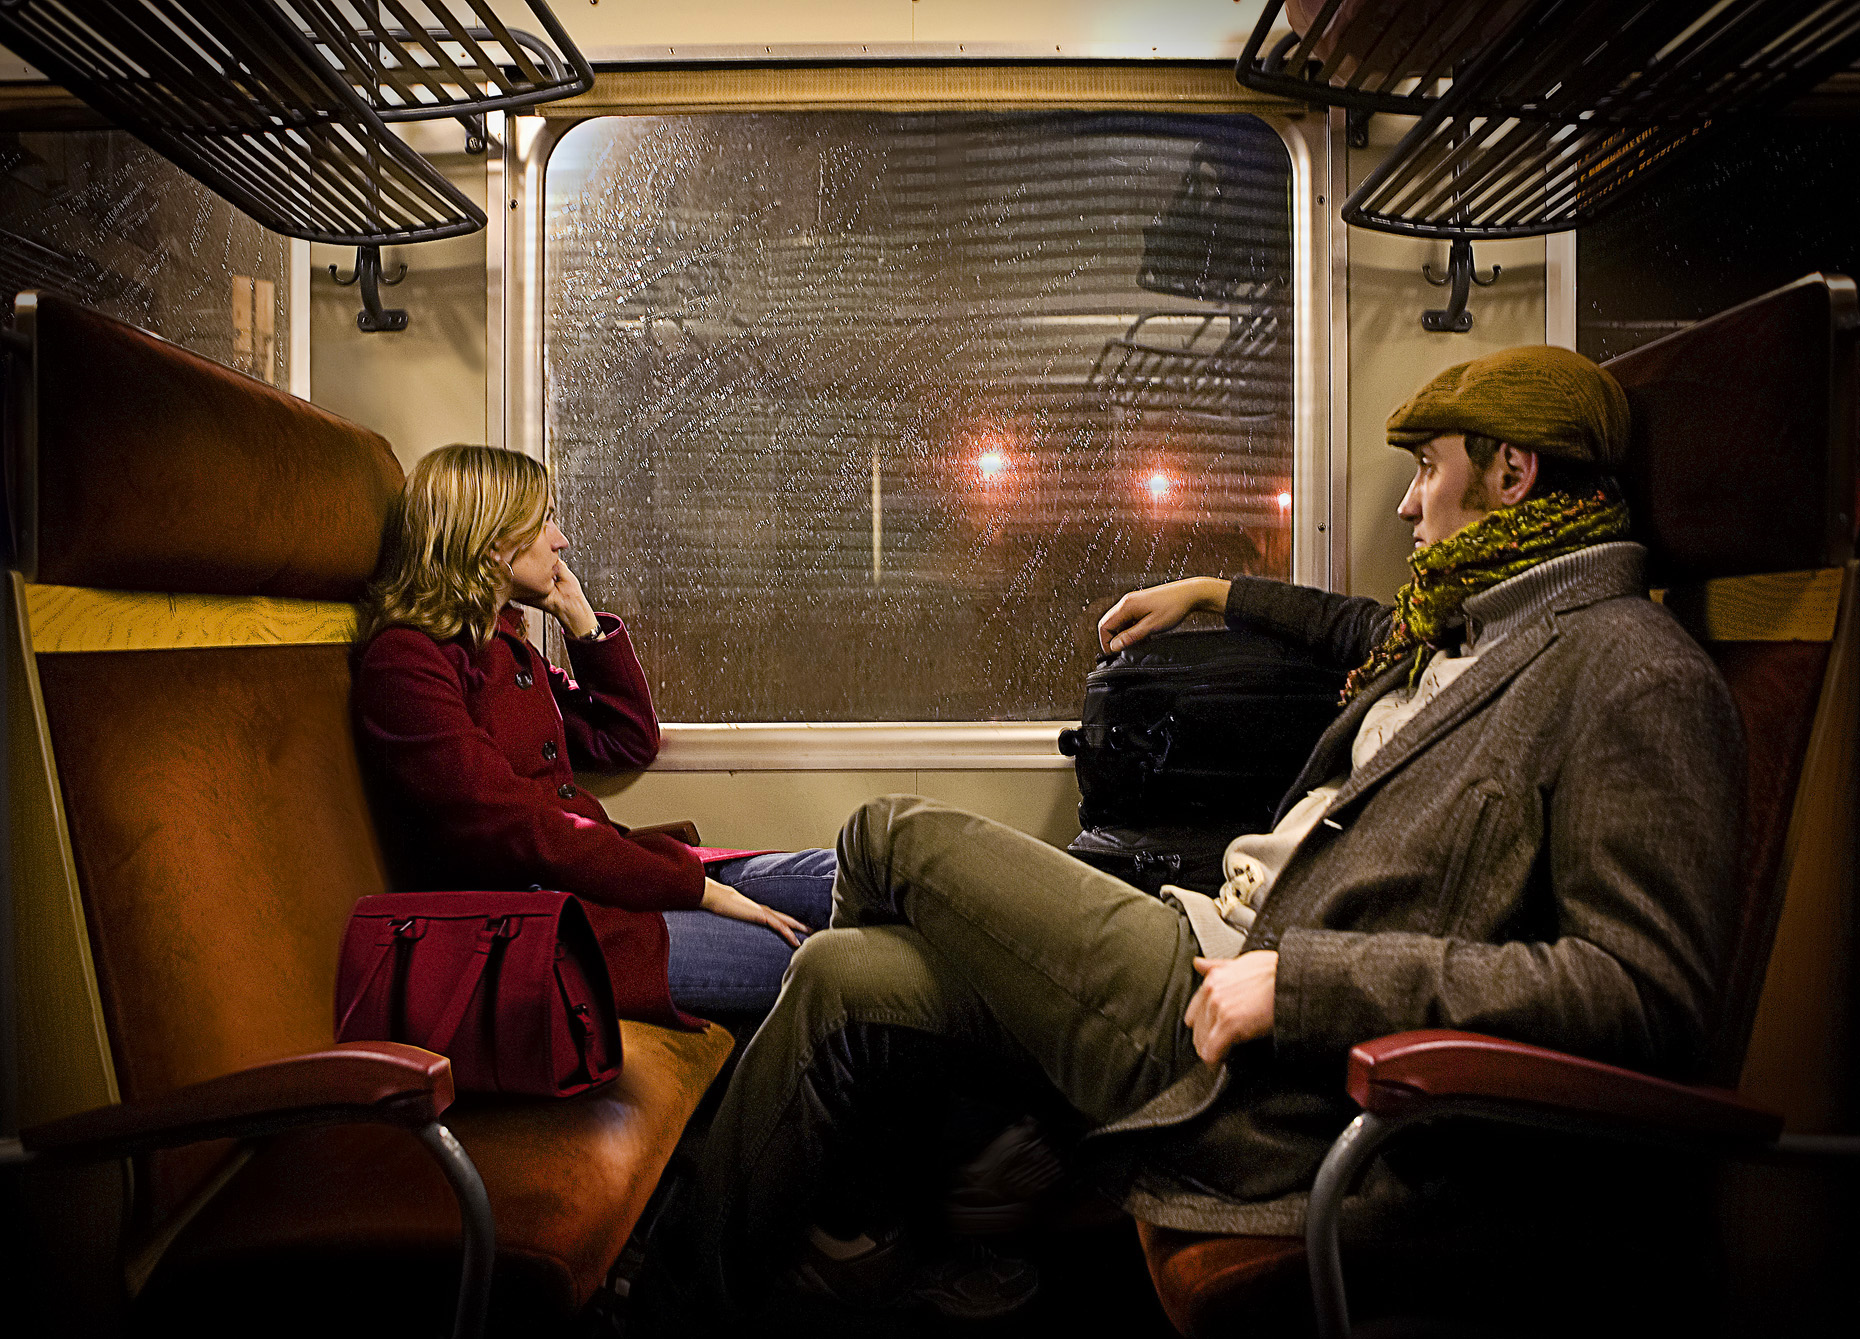 Assurant couple on train, Andy Goodwin Photography